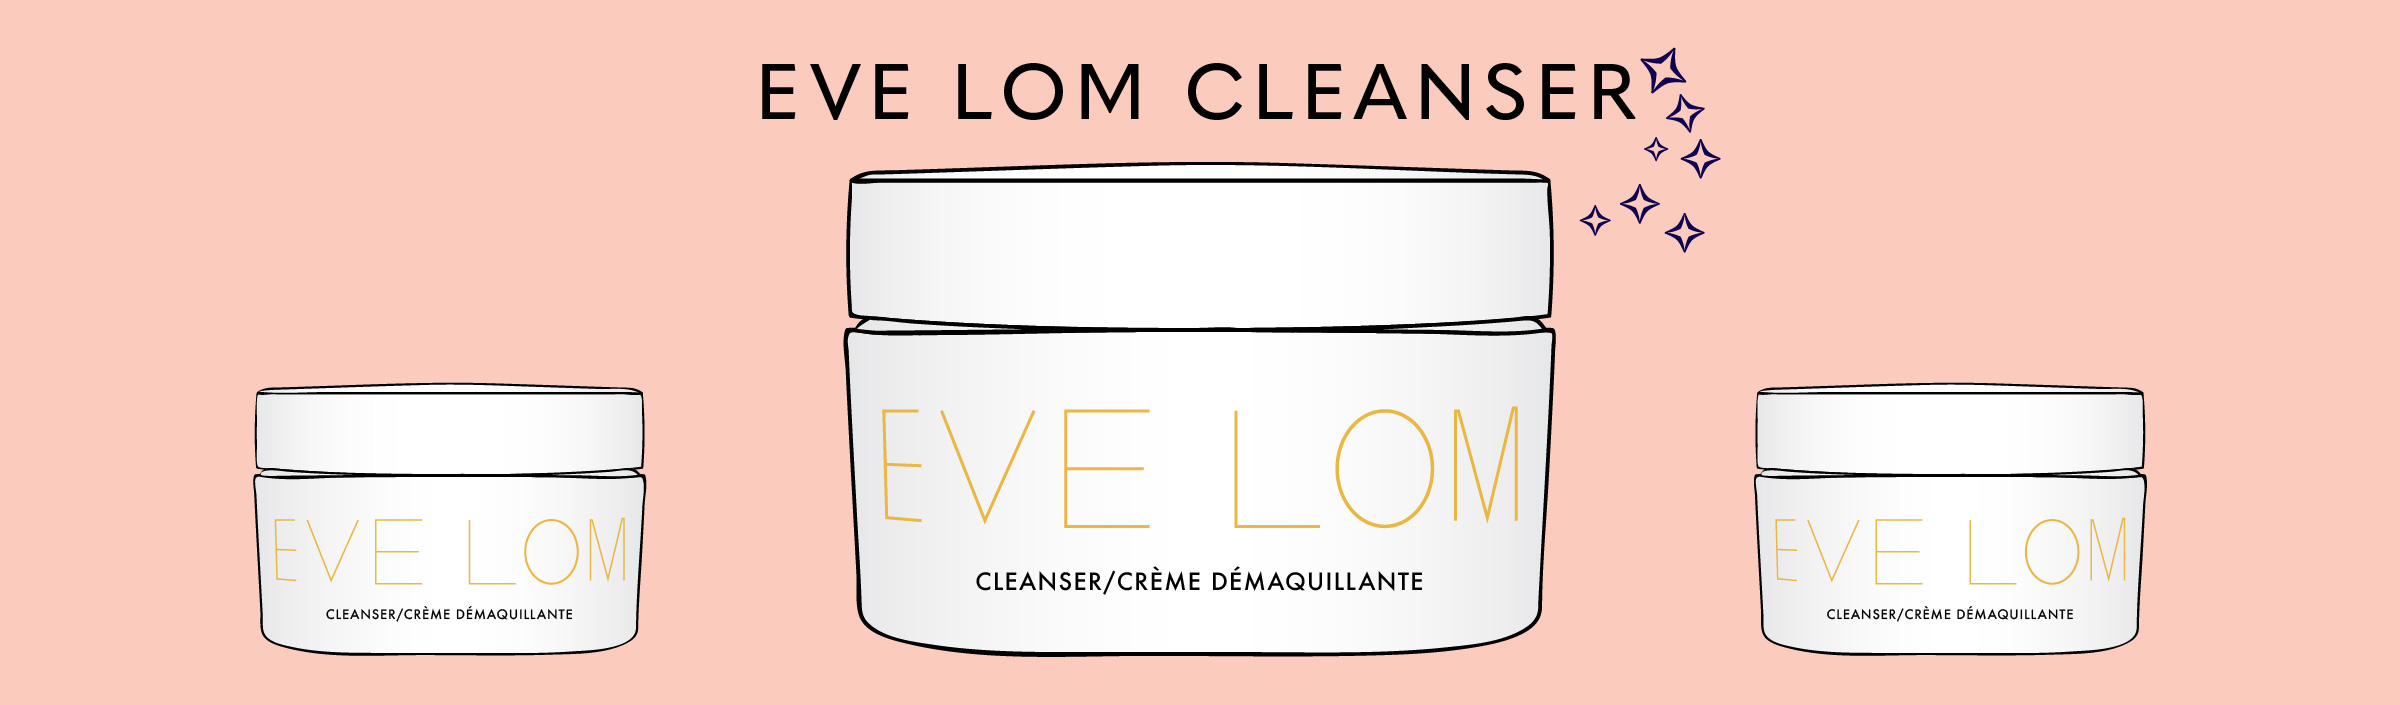 Eve Lom Cleanser Review.jpg